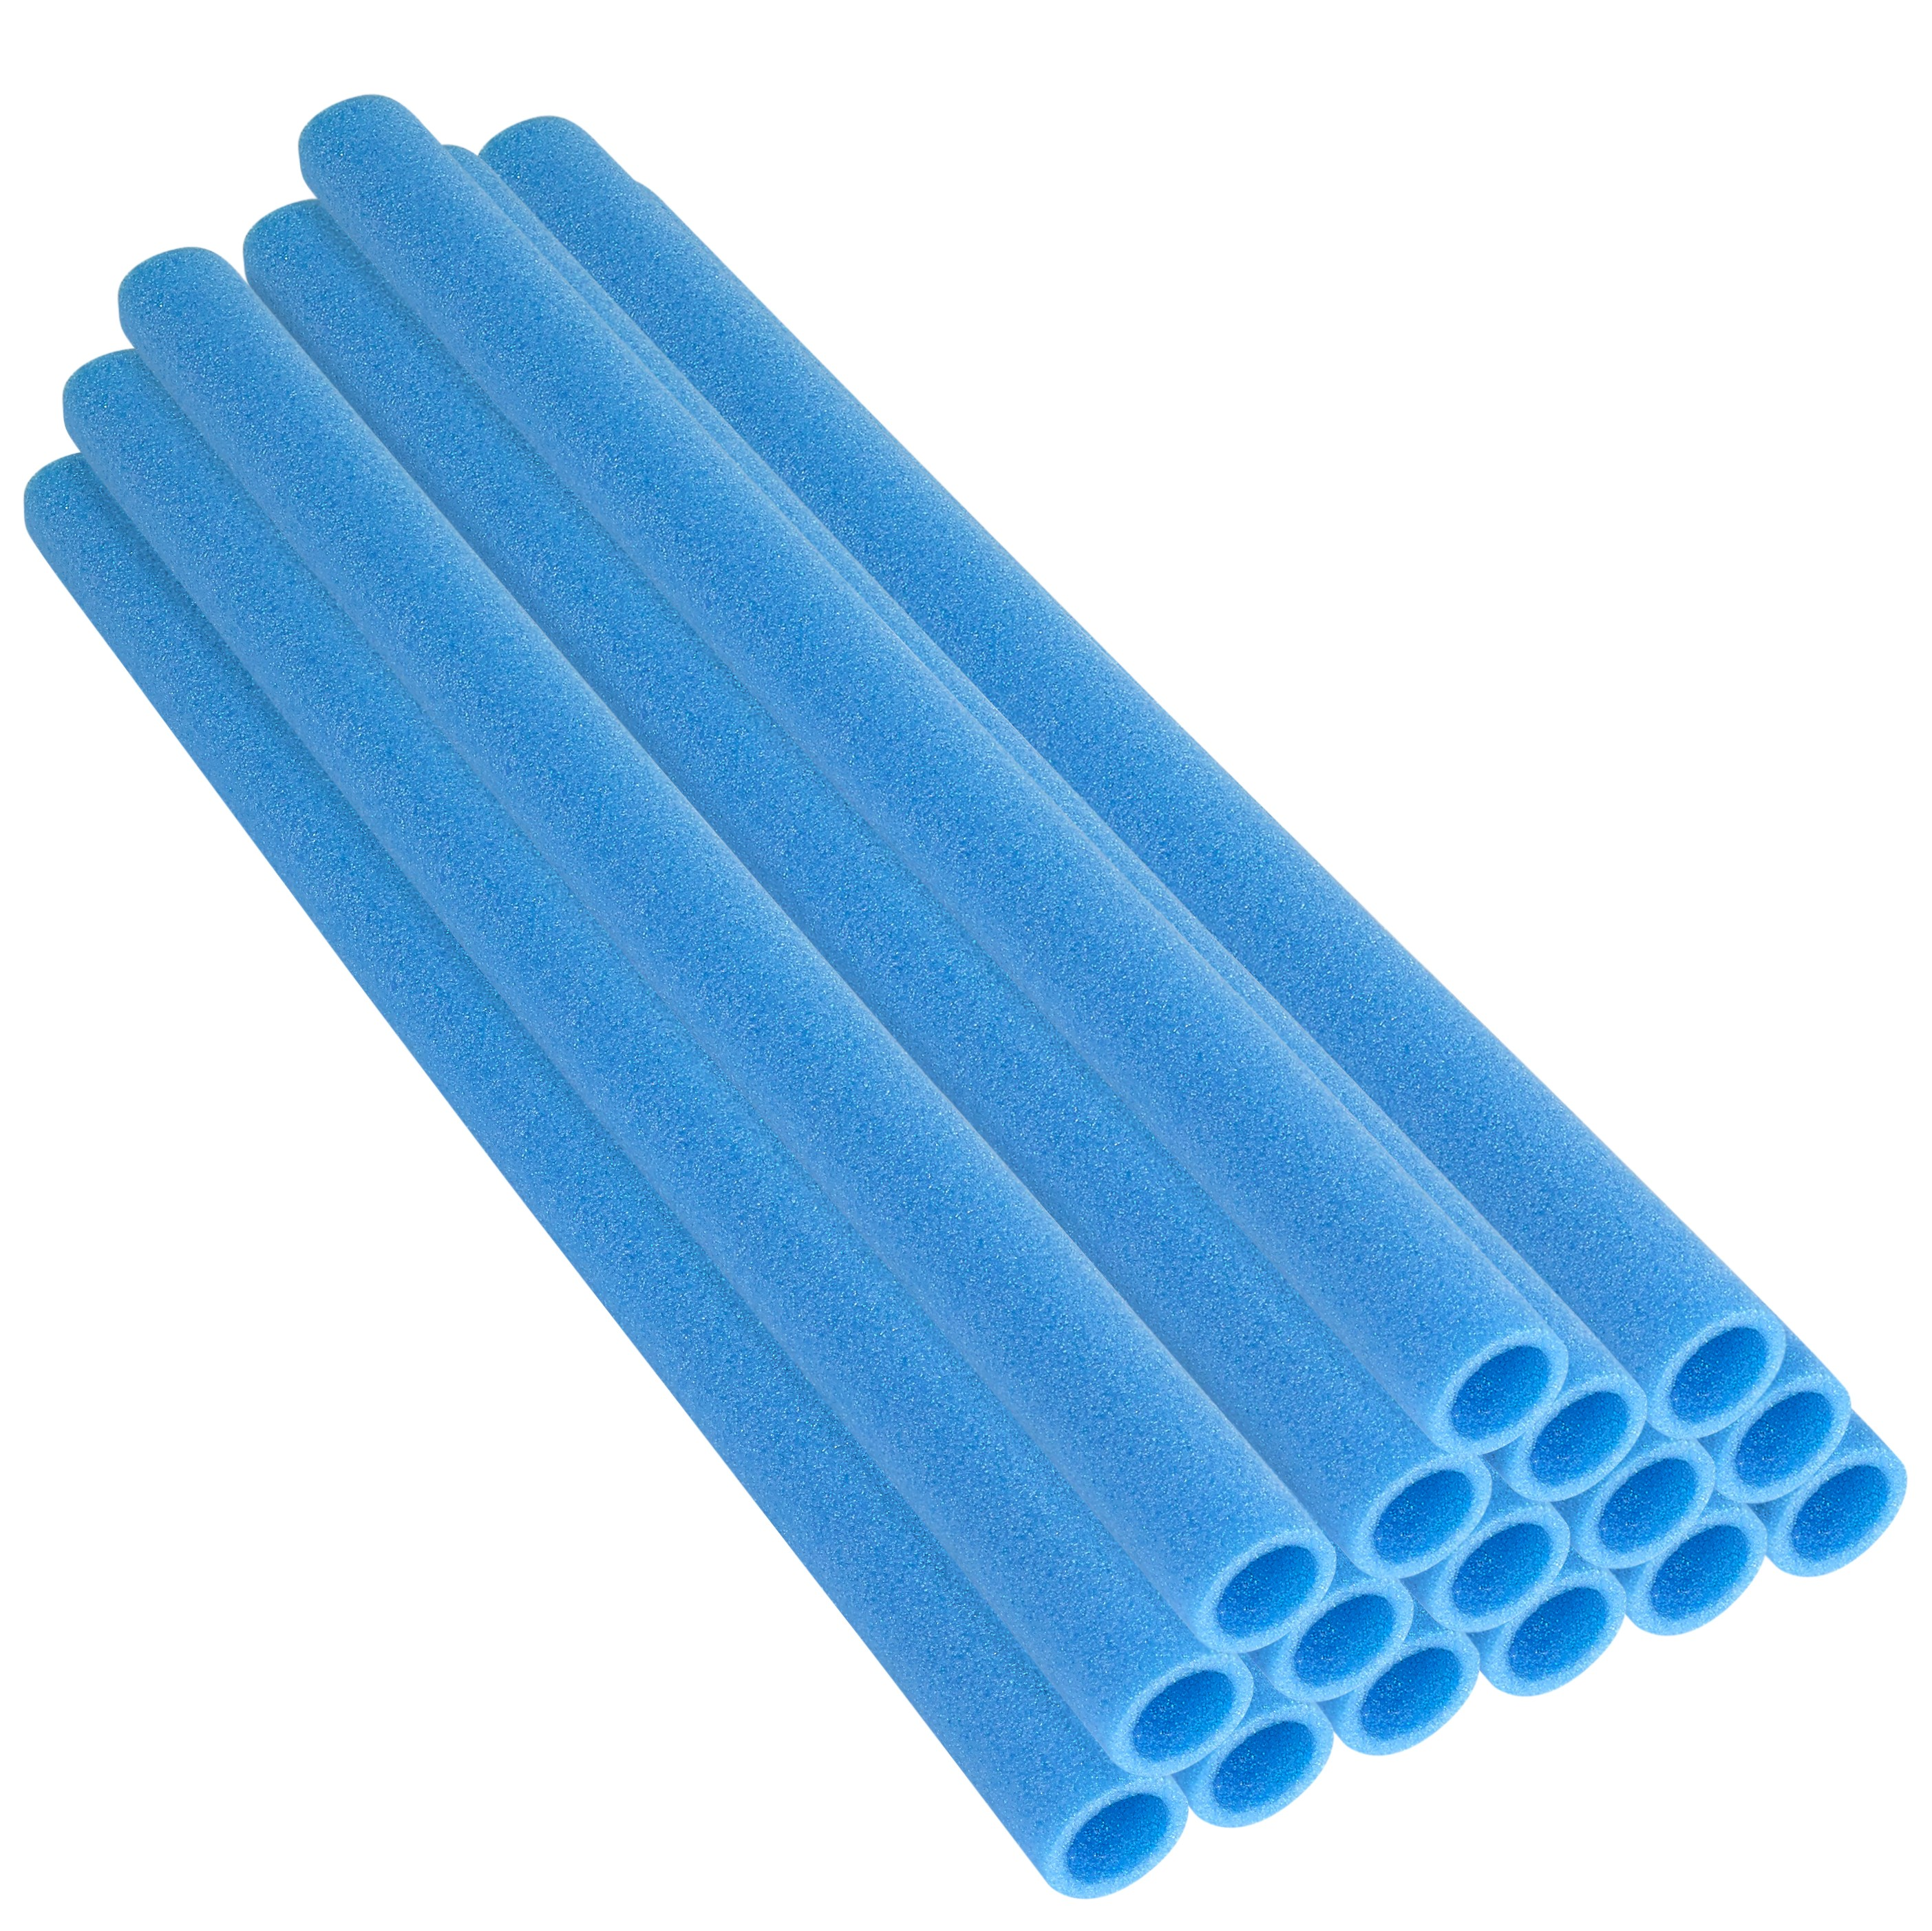 "37 Inch Trampoline Pole Foam Sleeves, fits for 1.5"" Diameter Pole - Set of 16 - Blue"